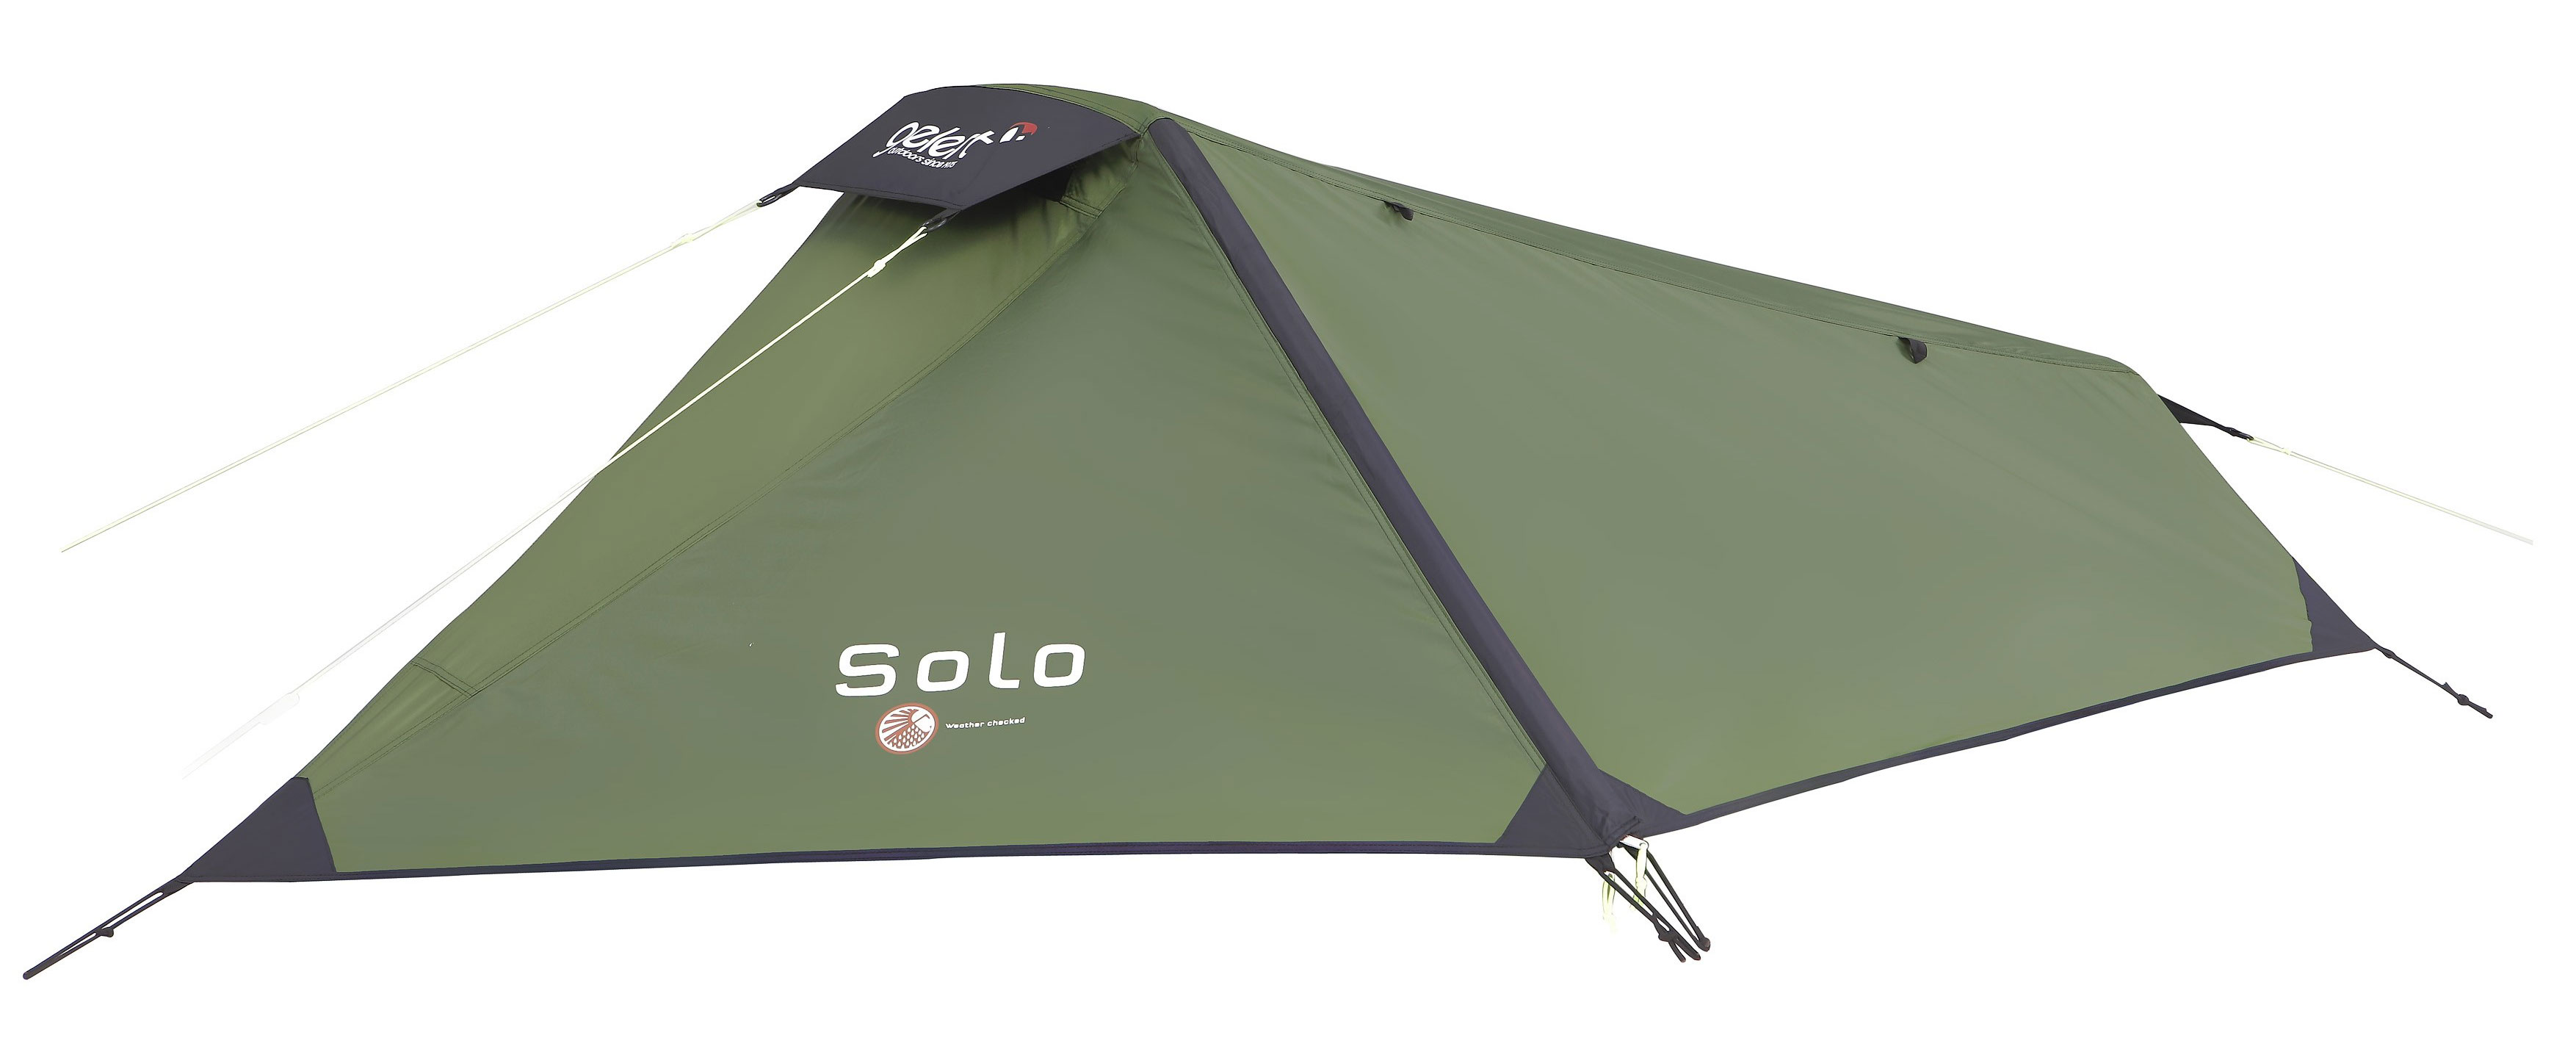 Check eBay* first and also look at the Amazon* listingu0027s u201cAlso Viewedu201d section for several identical tents with different ...  sc 1 st  Tomu0027s Bike Trip & What Are The Best Tents For Cycle Touring?